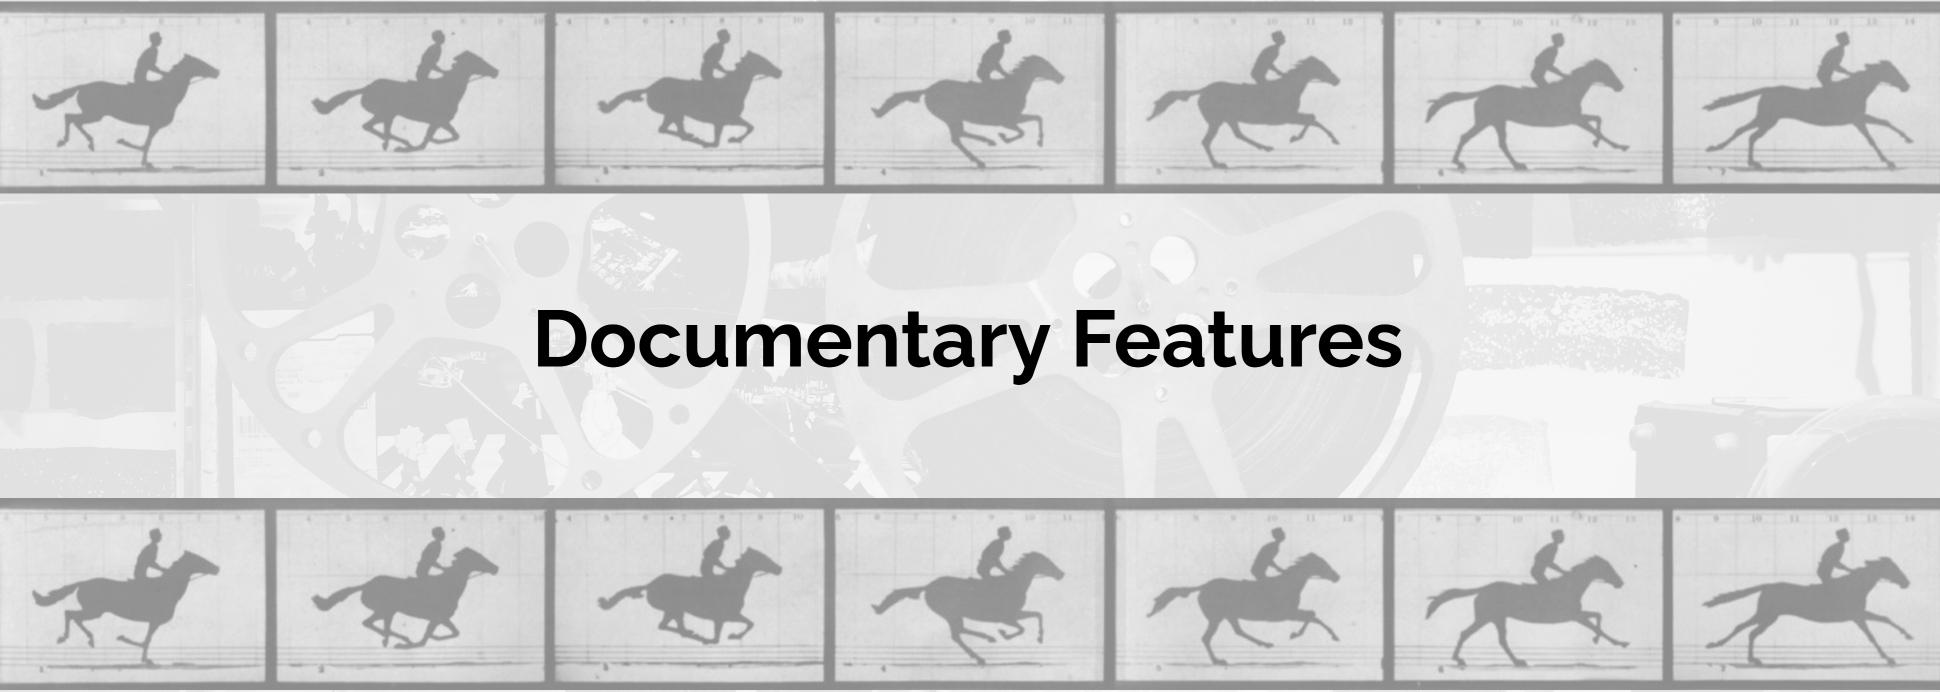 Documentary Features